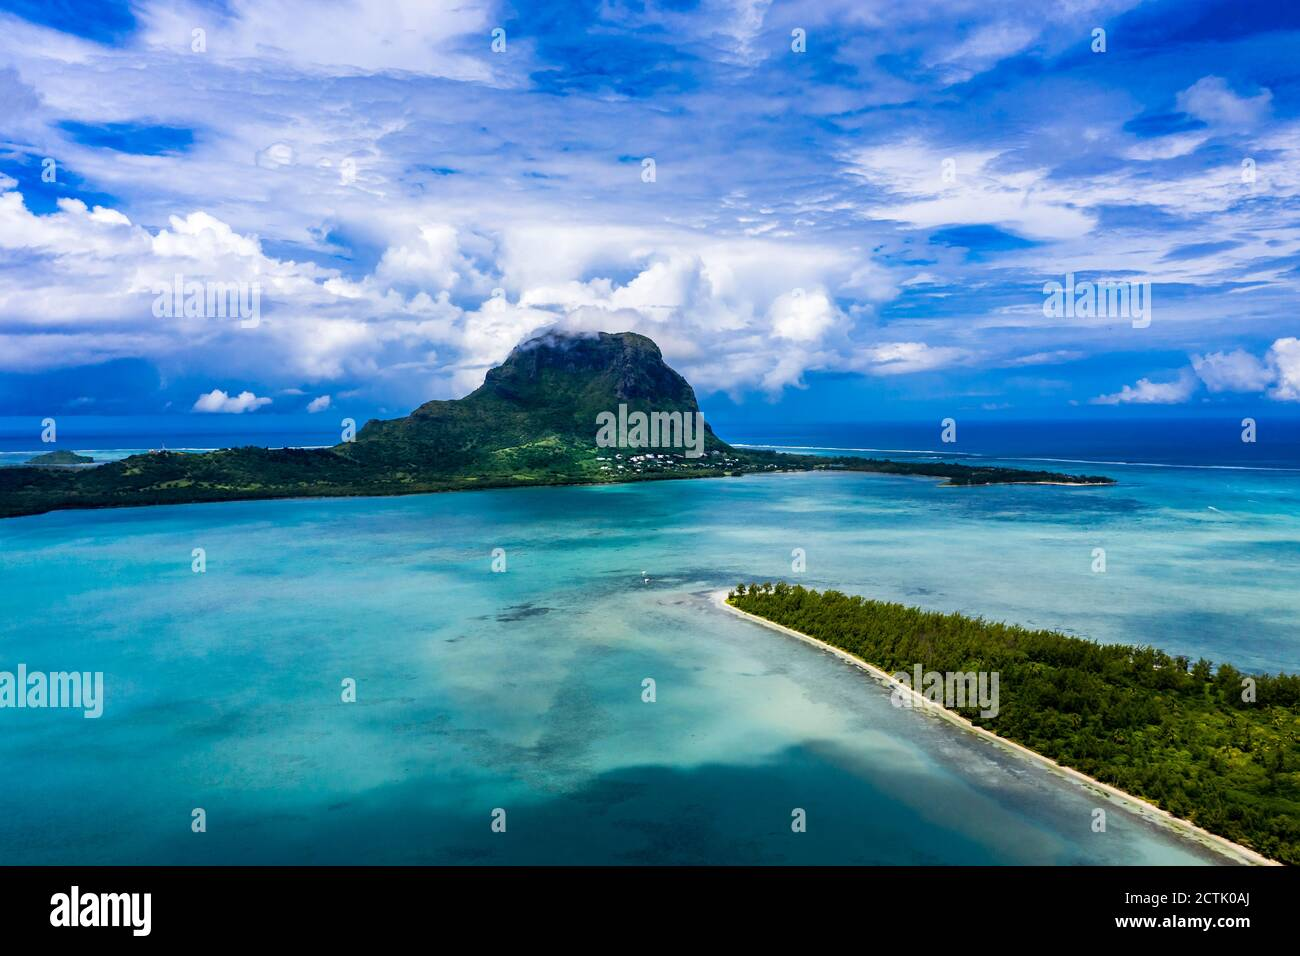 Mauritius, Black River, Tamarin, Helicopter view of Indian Ocean and Le Morne Brabant mountain Stock Photo